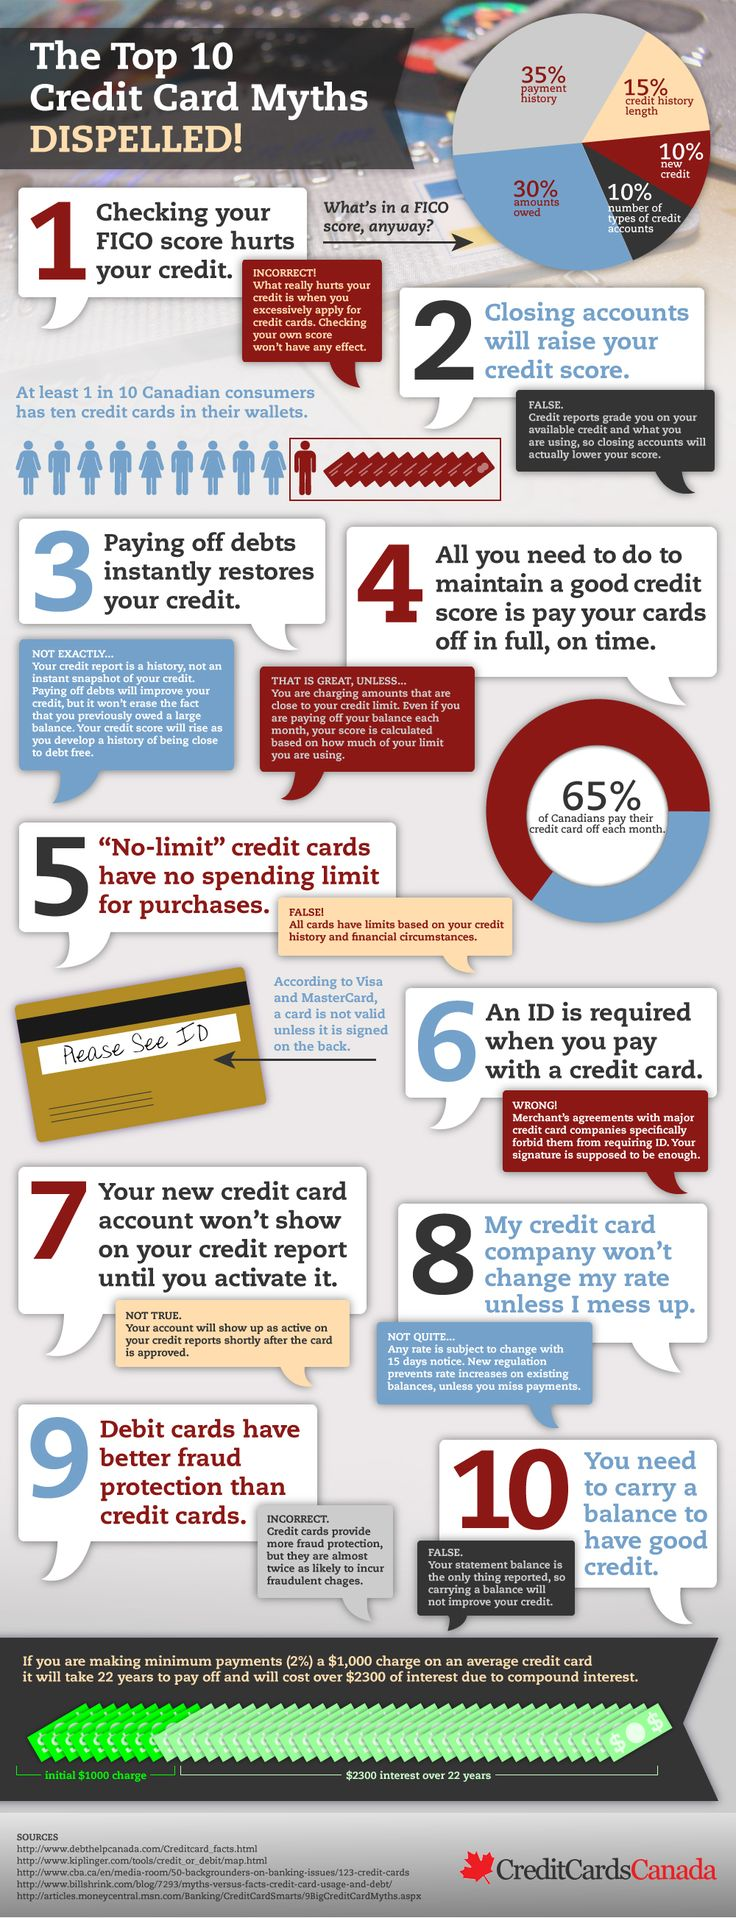 www.cleanslatecredit4u.com - How Credit History Can Predict Divorce